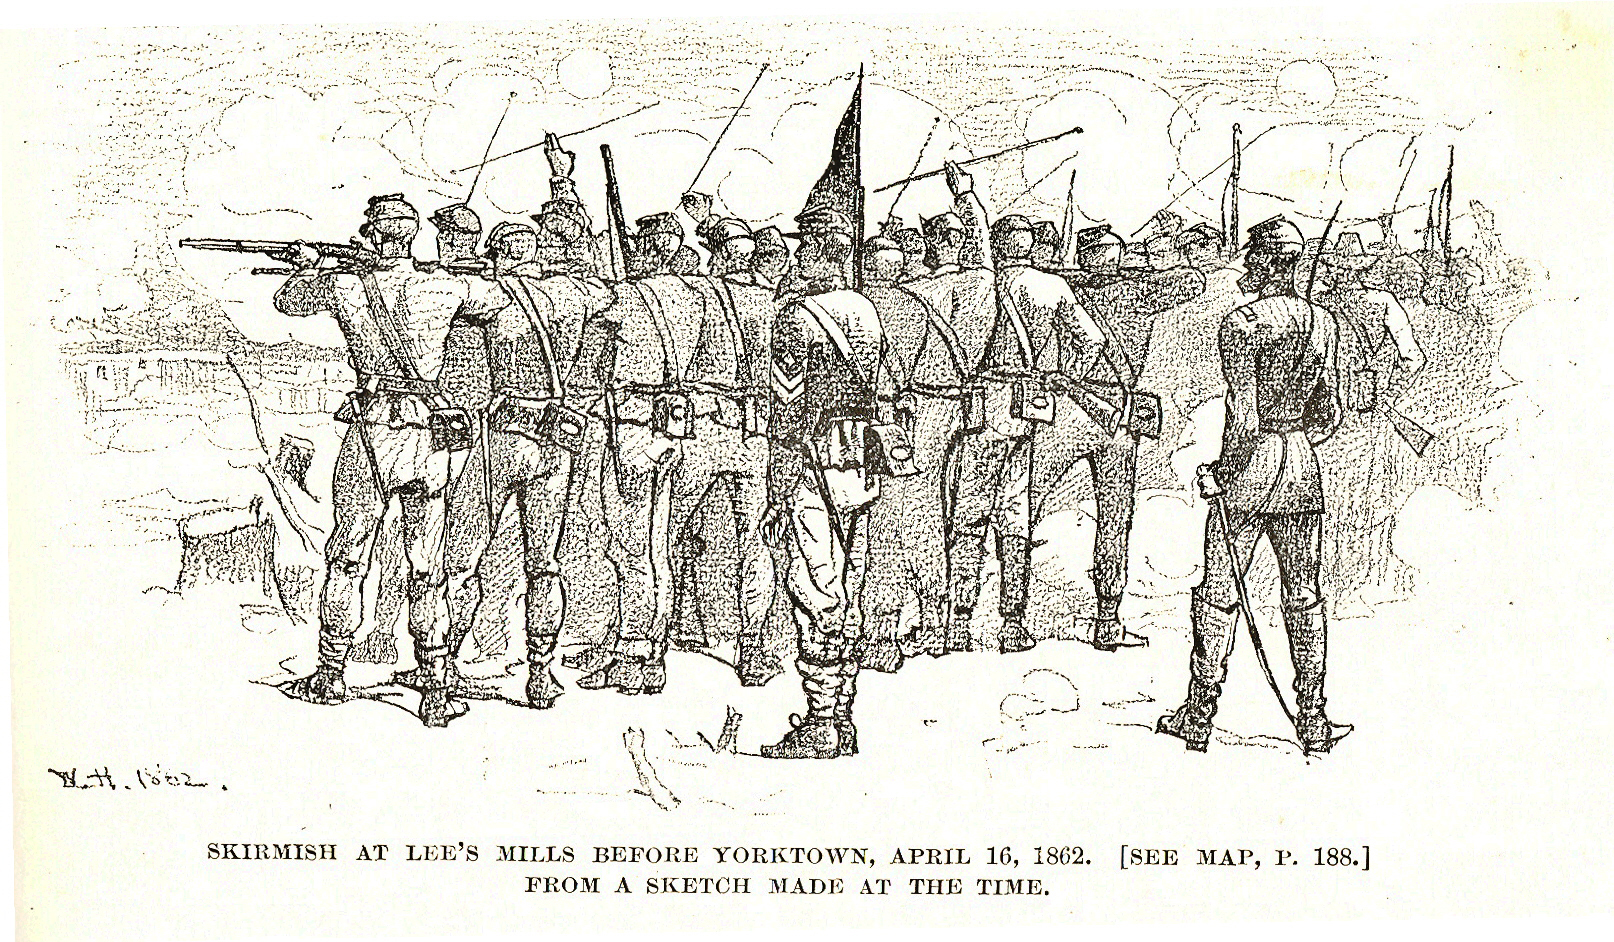 Lee's Mills skirmish